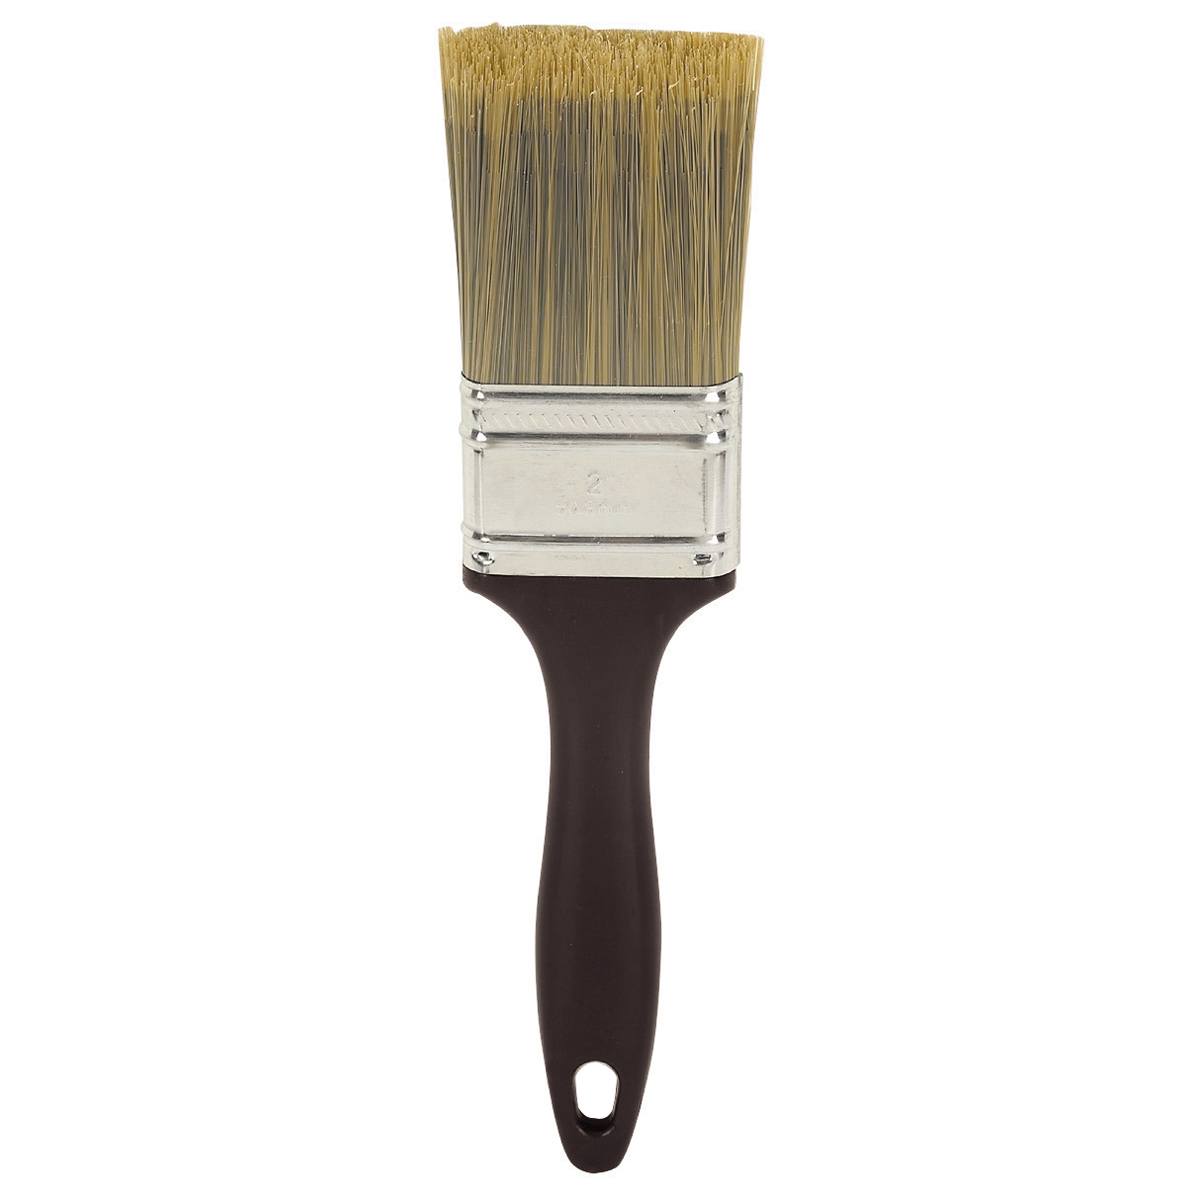 2 in professional paint brush